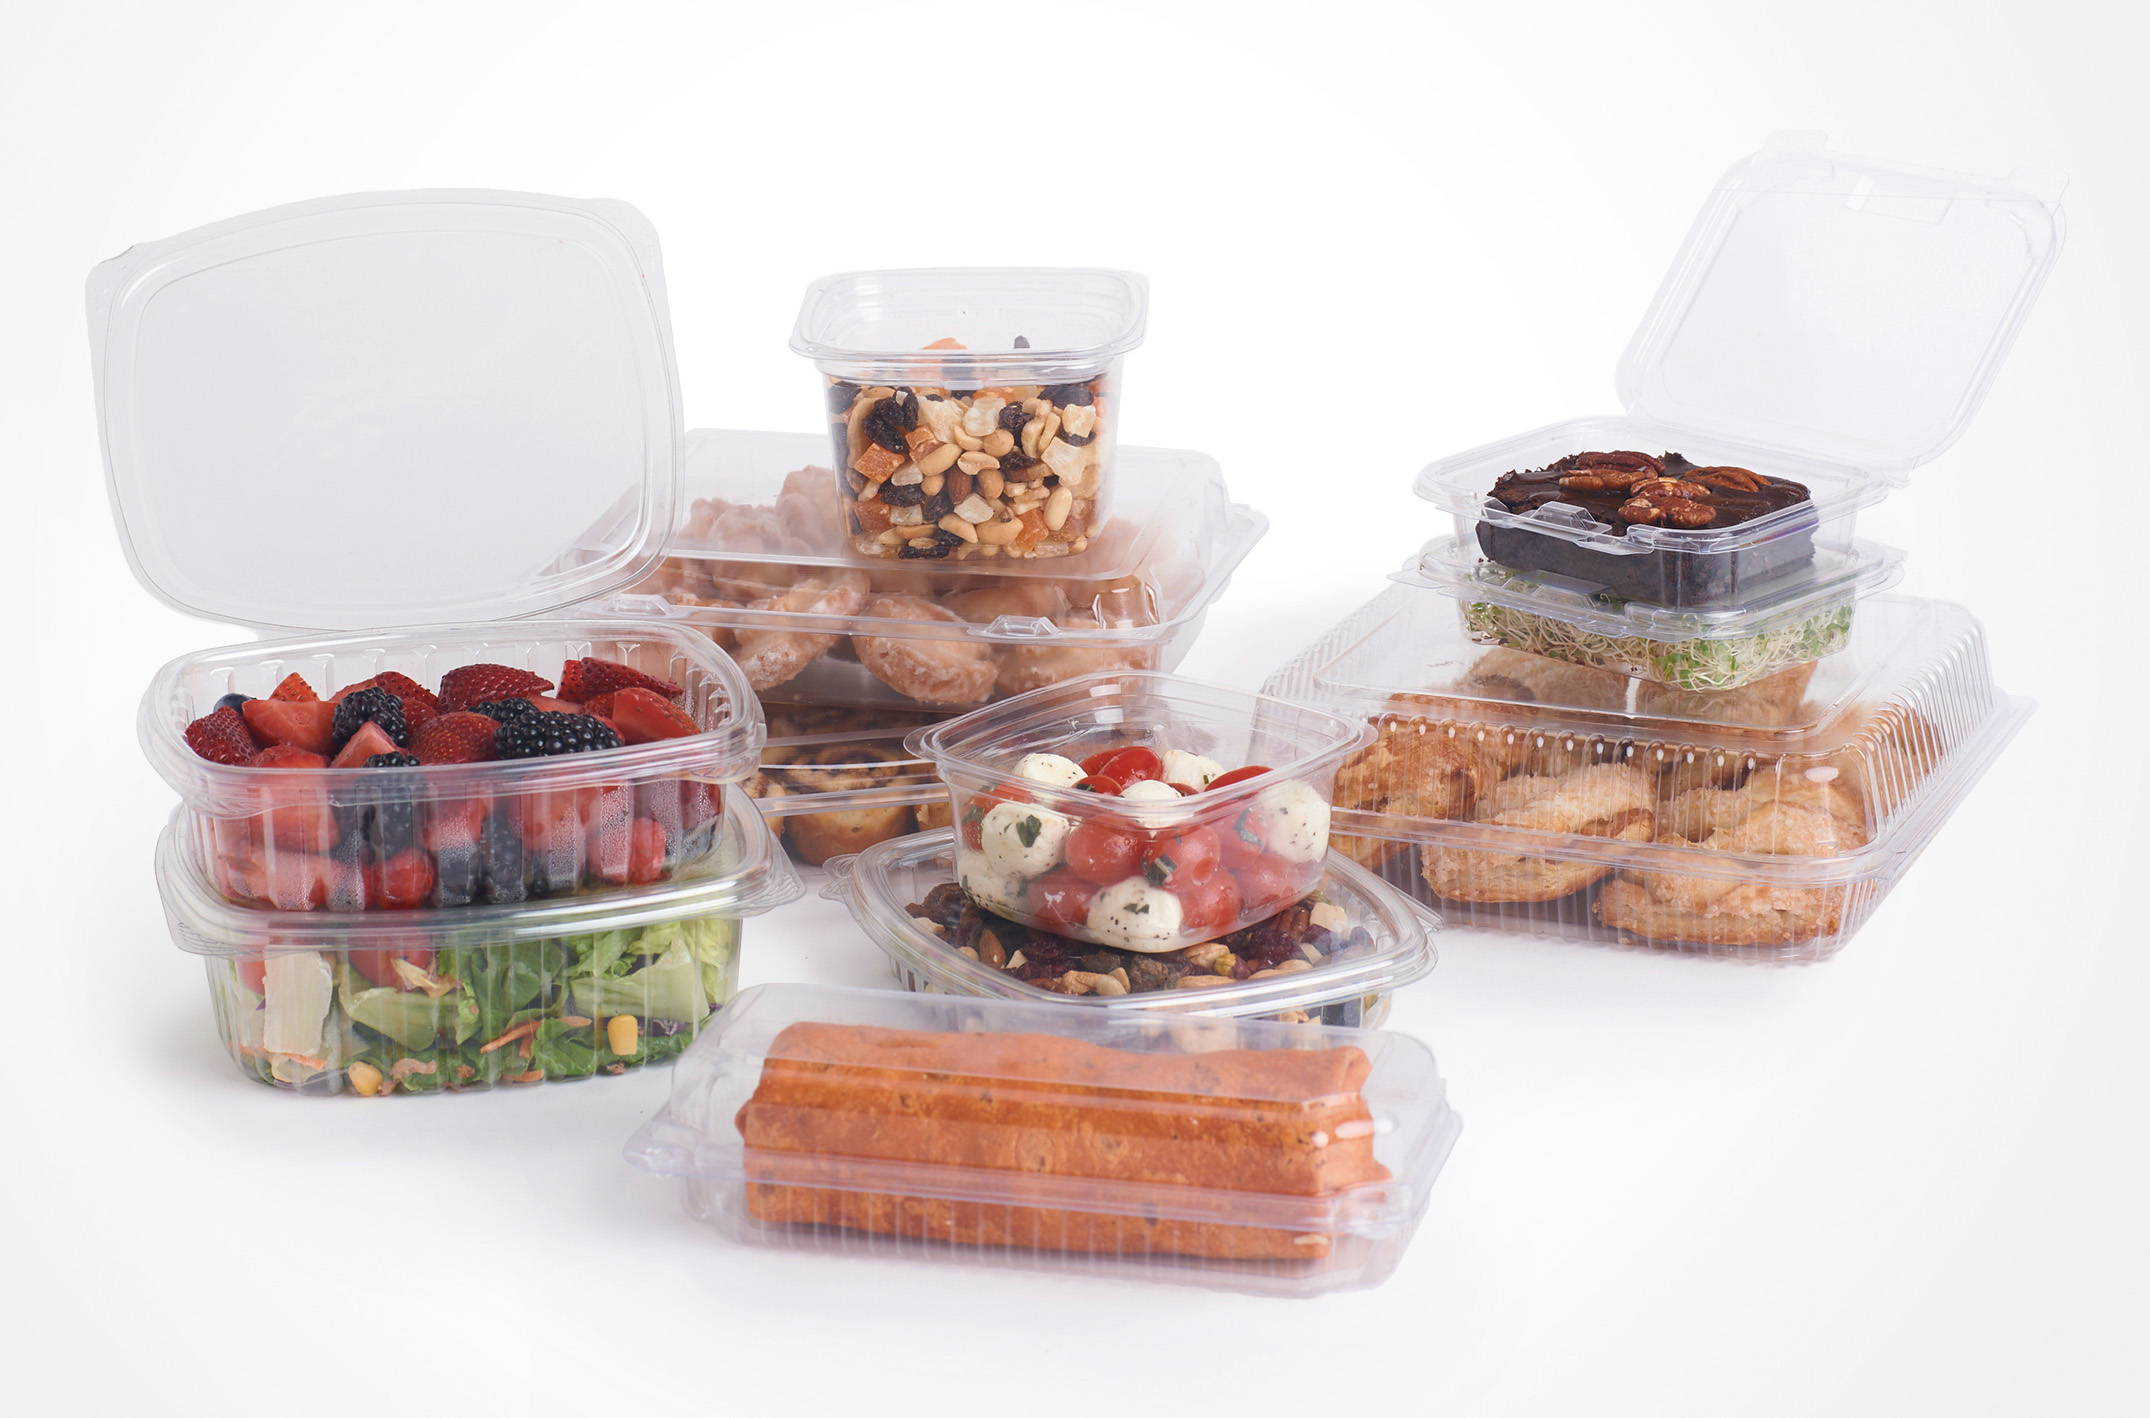 recyclable deli containers for fridge and freezer